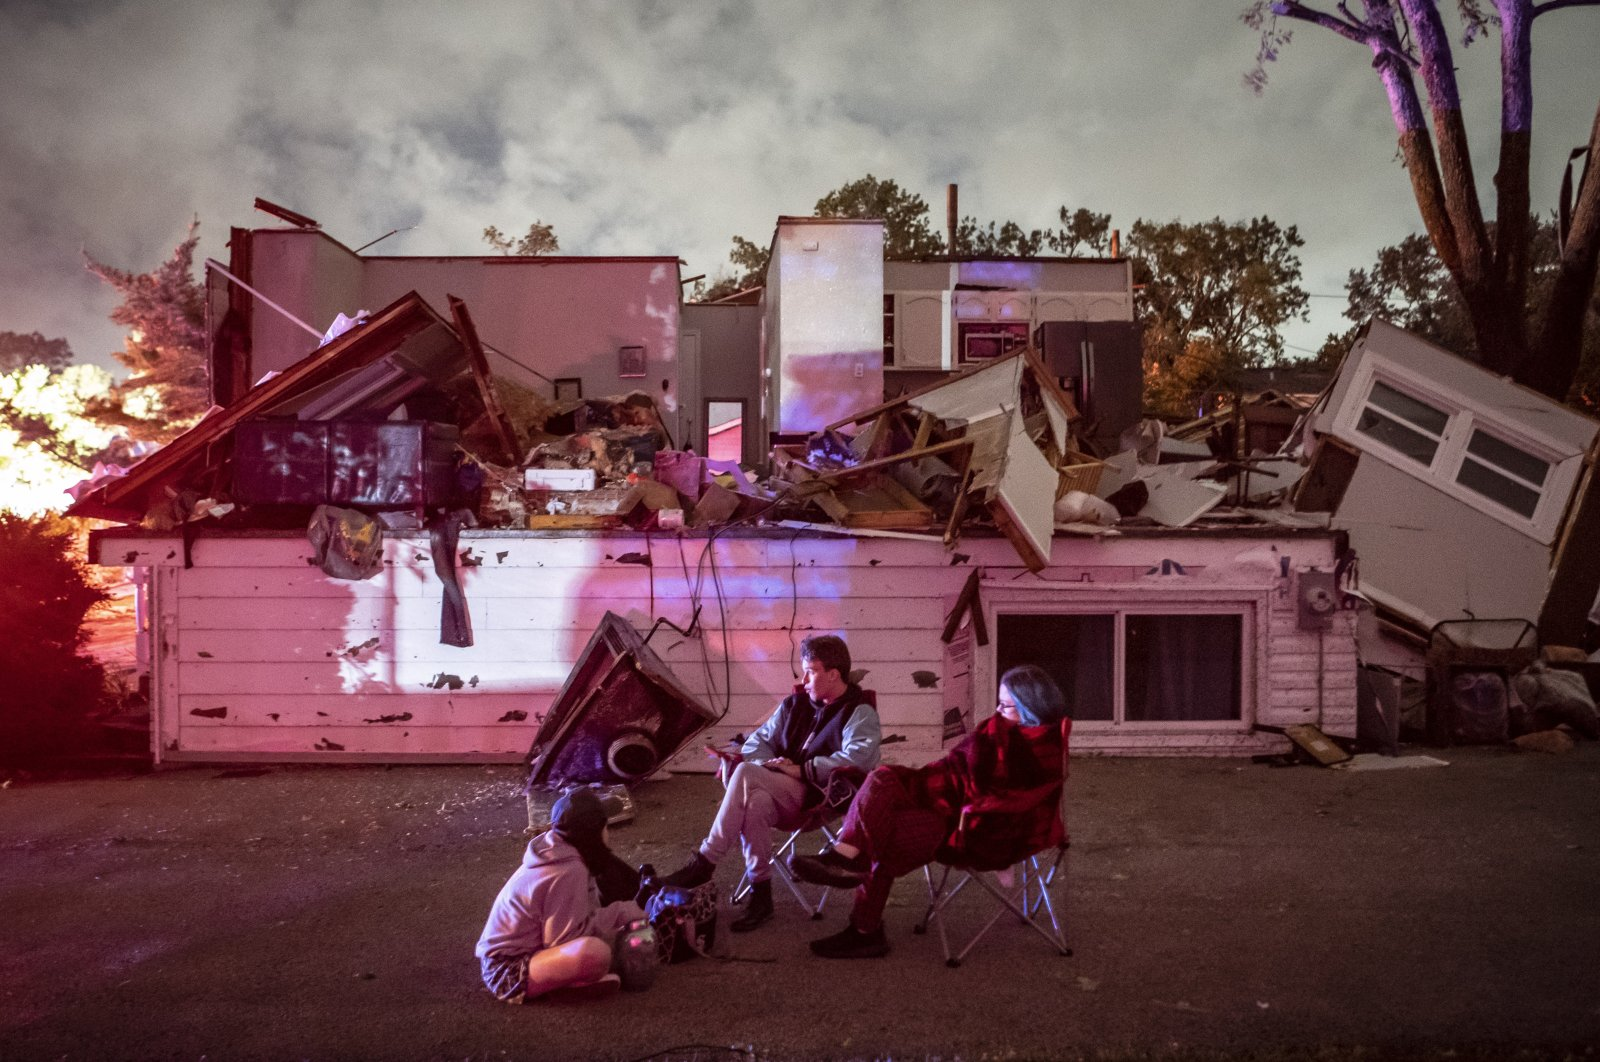 Bridget Casey sits in the driveway of her severely damaged home with her son Nate, 16, and daughter Marion, 14, after a tornado swept through the area in Woodridge, Ill., the U.S., June 21, 2021. (AP Photo)